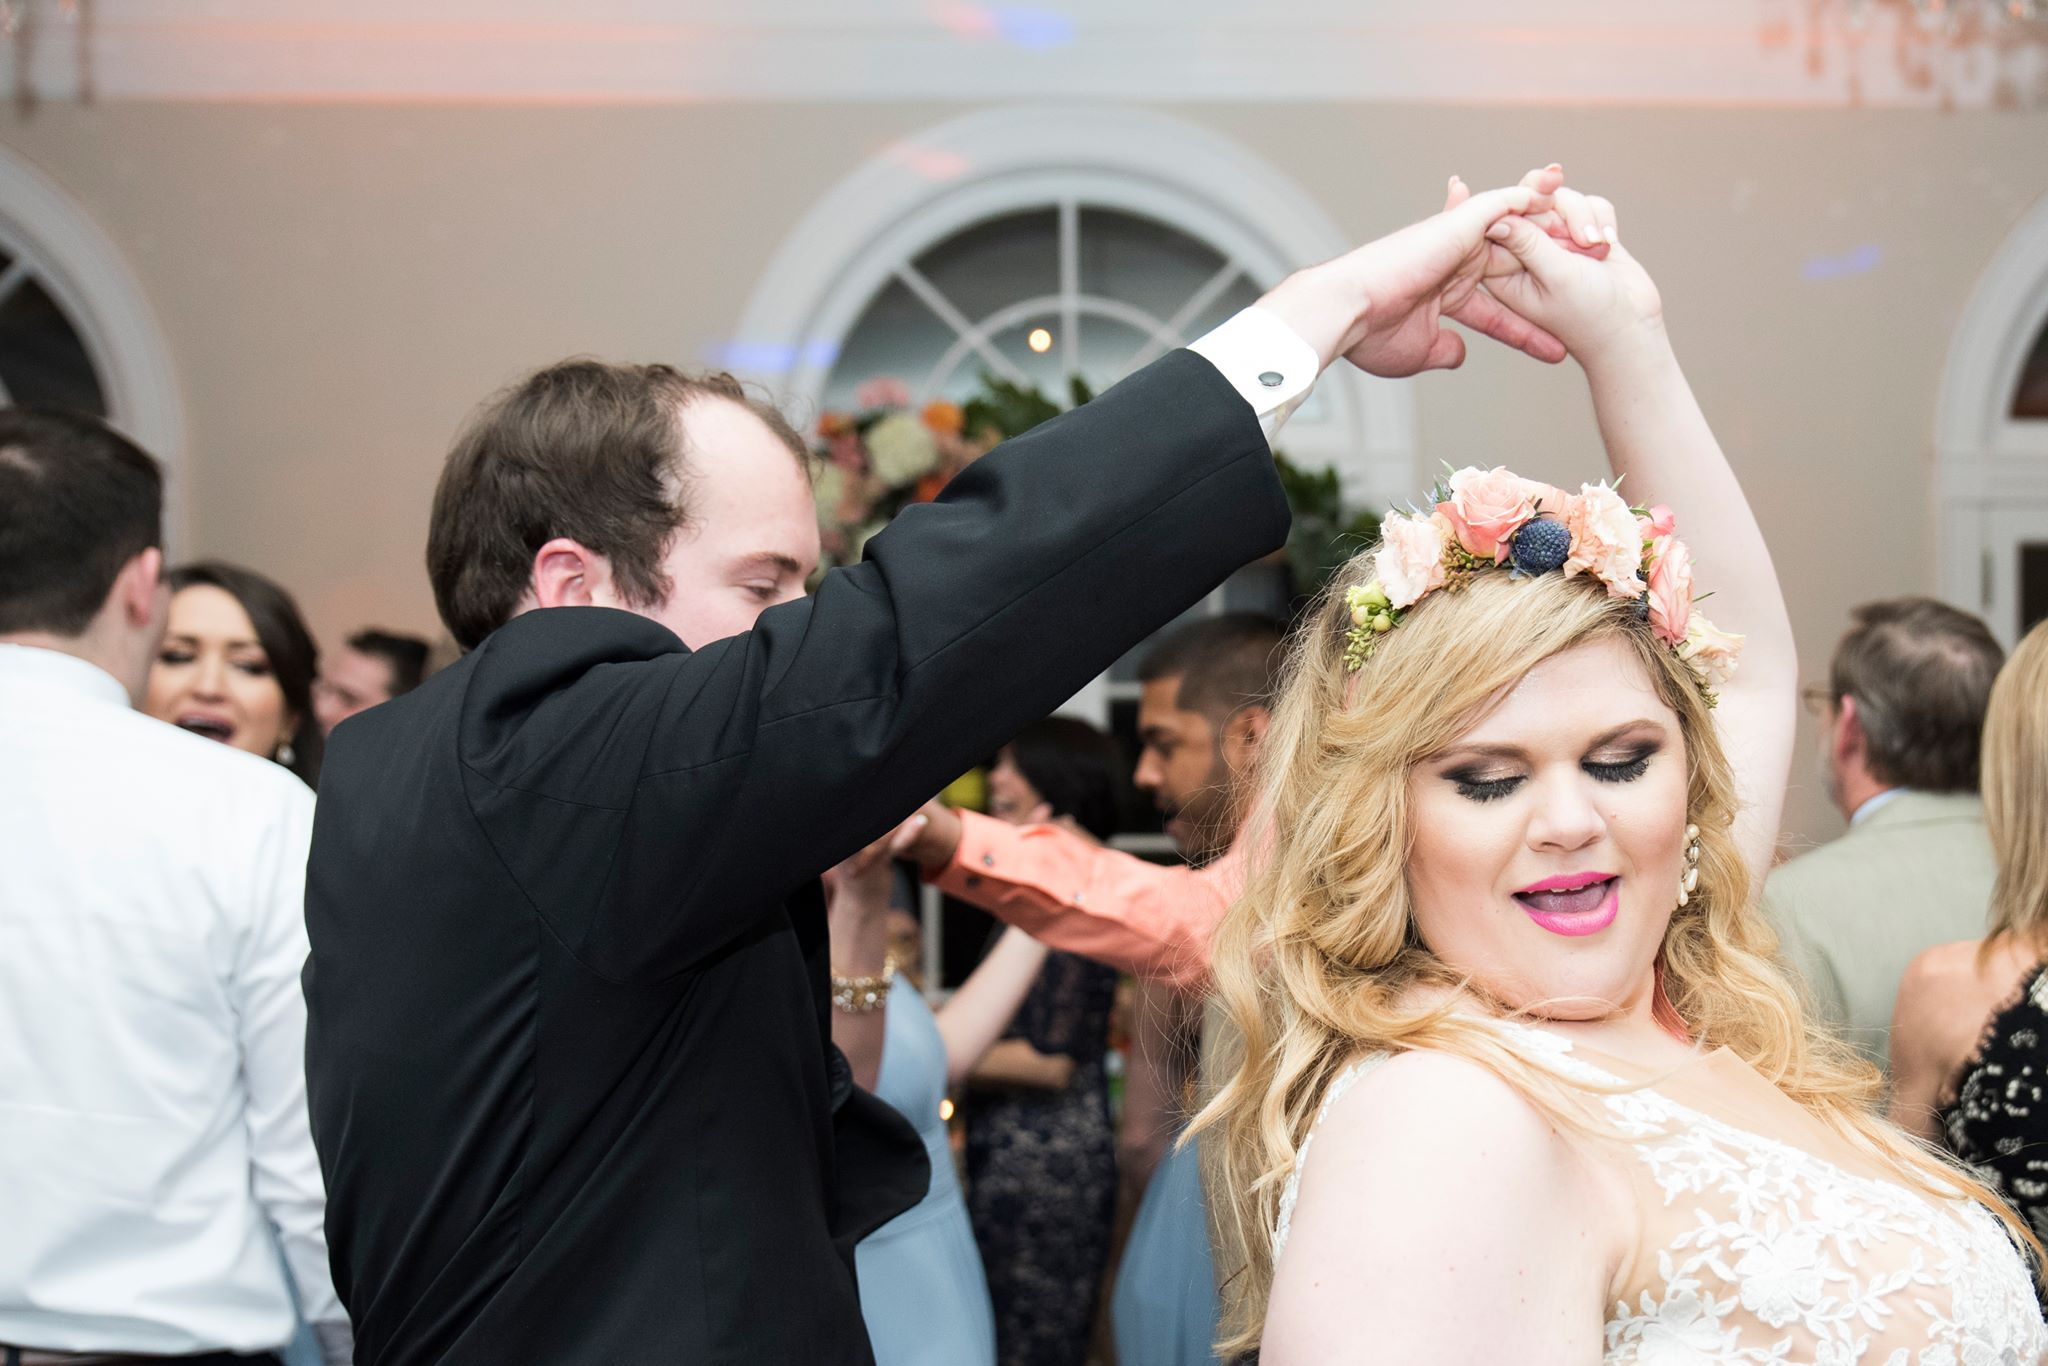 Bride and groom dancing at Separk Mansion wedding reception with music provided by Split Second Sound